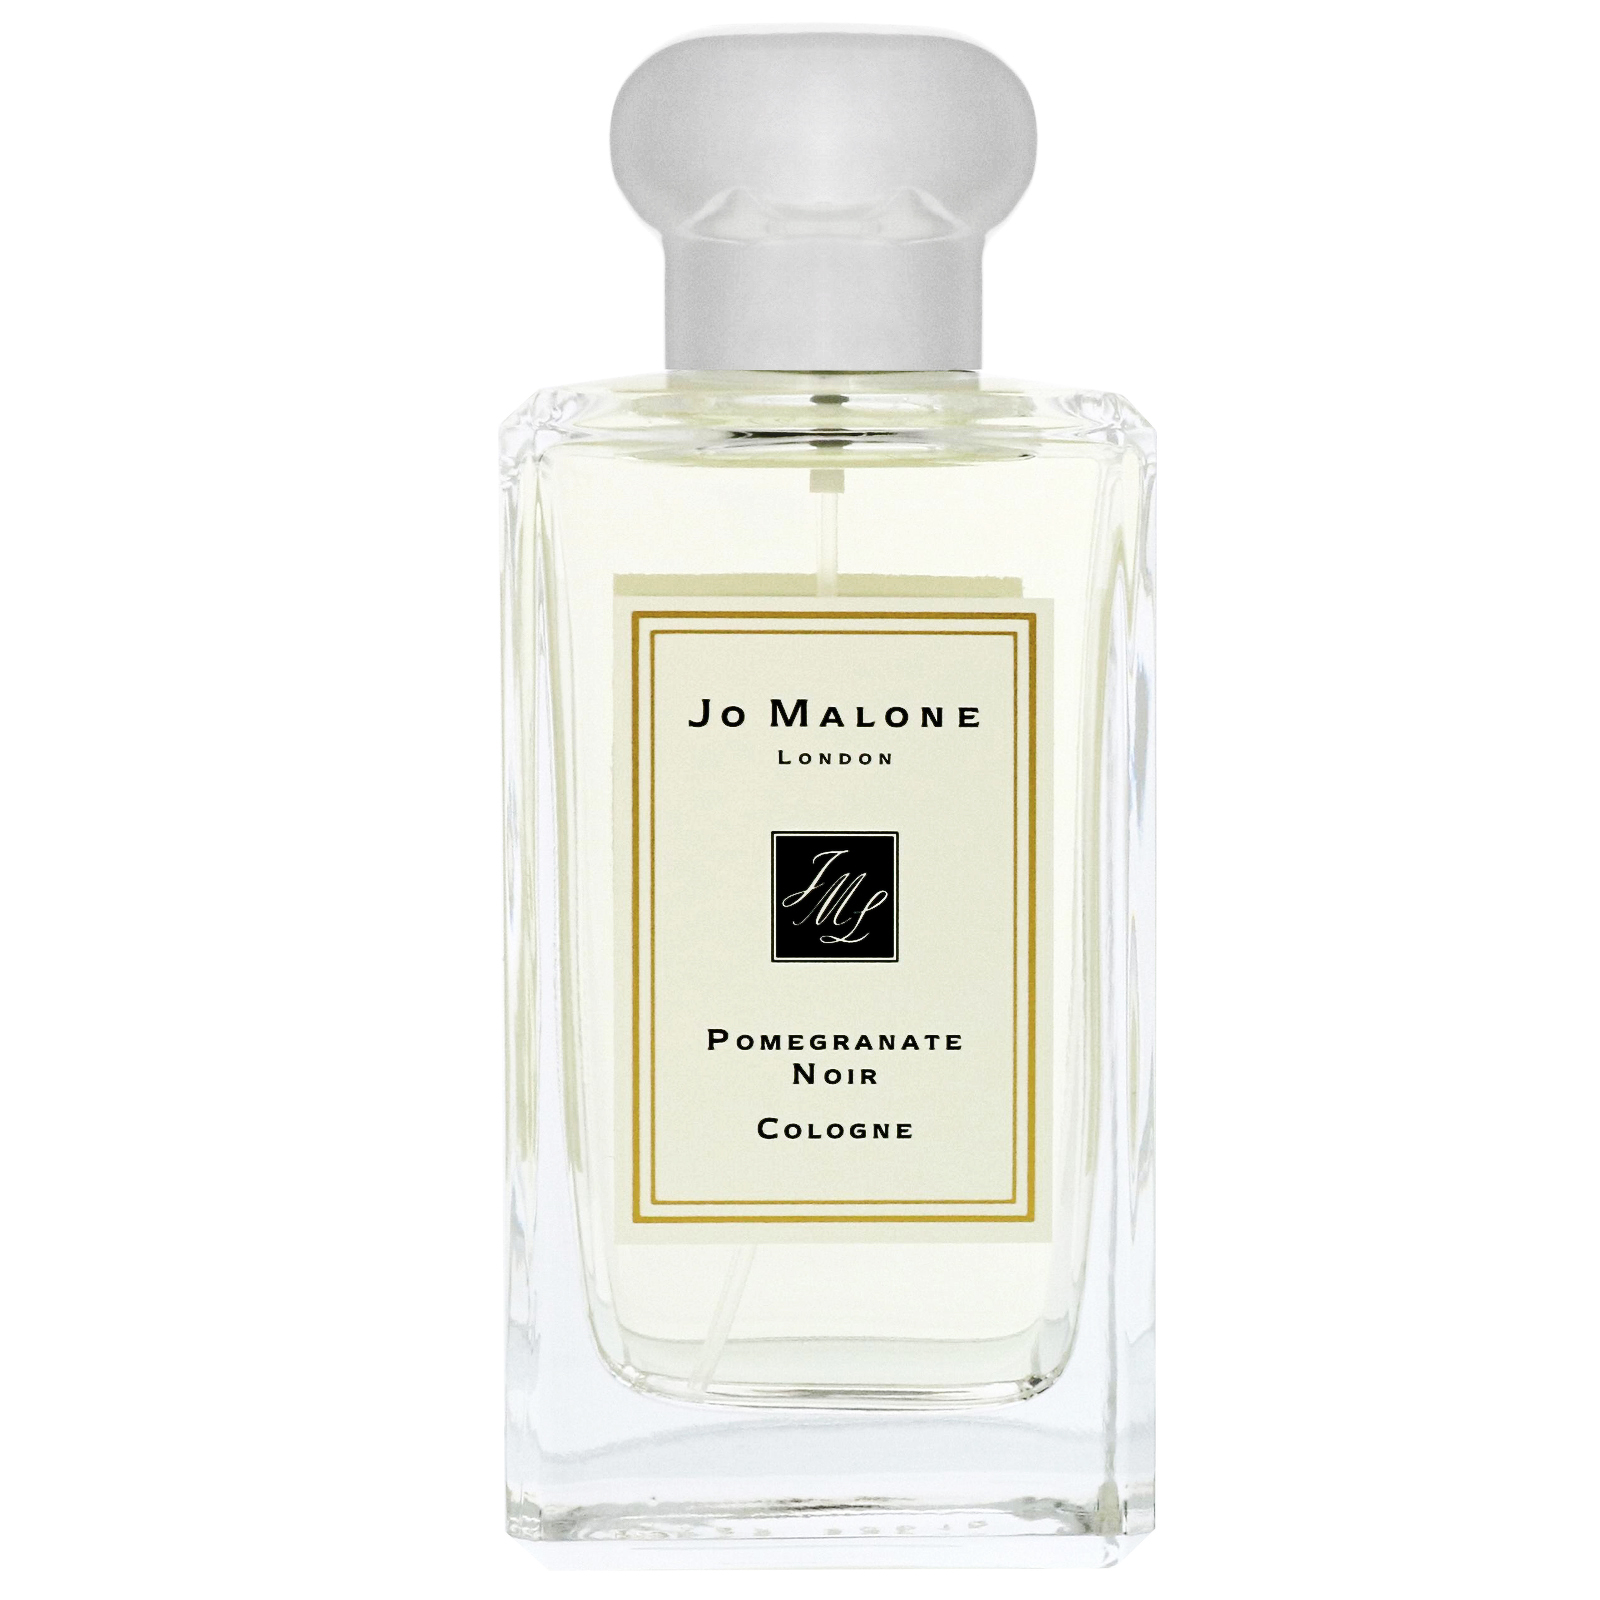 Jo Malone Pomegranate Noir Eau de Cologne Spray 100ml